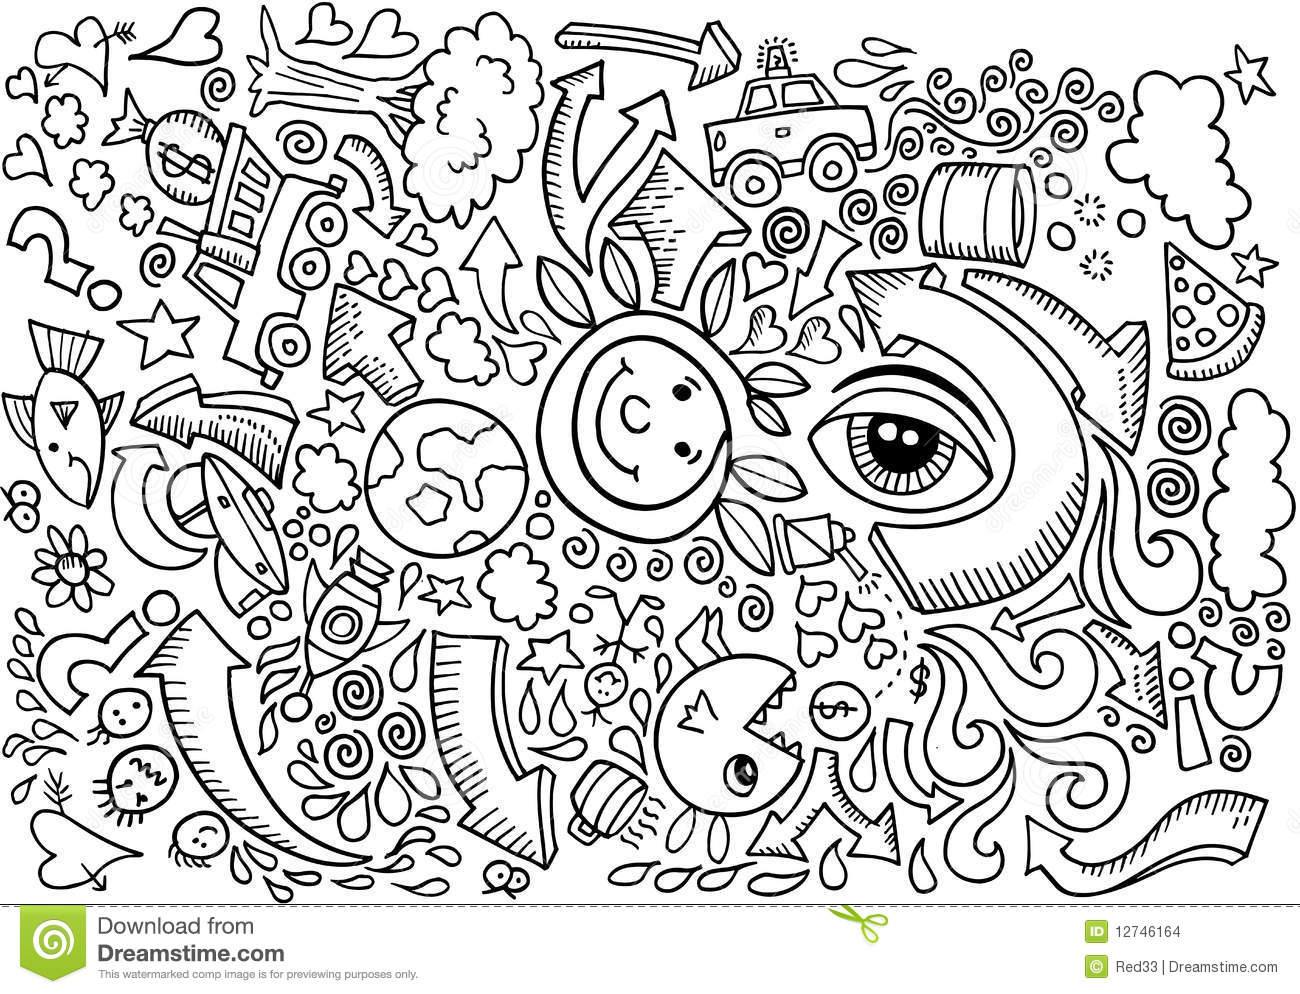 Doodle sketch drawing vector stock vector image 12746164 for Doodle art free